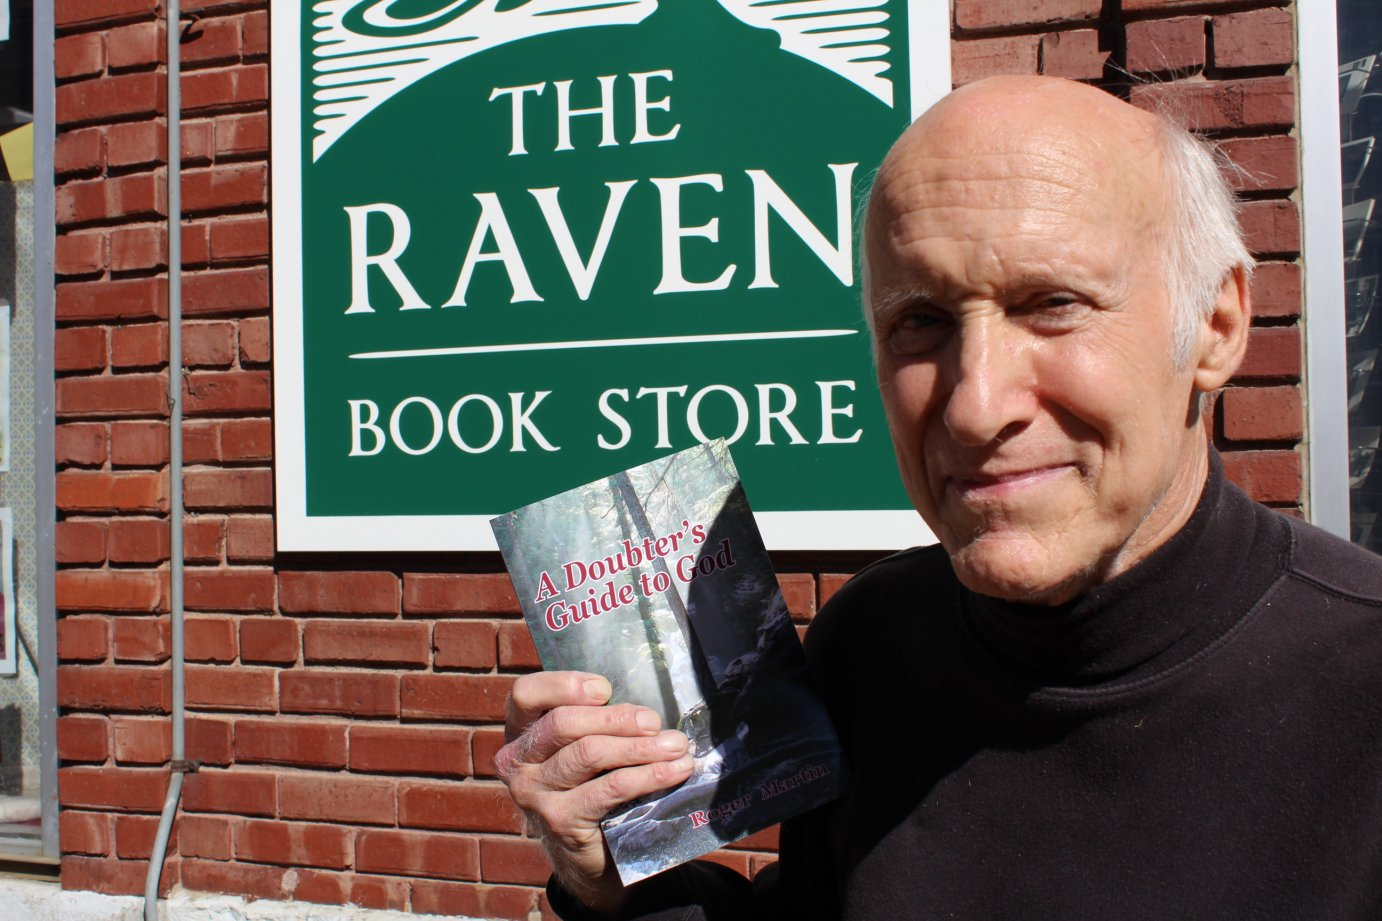 Lawrence writer Roger Martin, sitting outside the Raven Book store in downtown Lawrence. (Photo by J. Schafer)